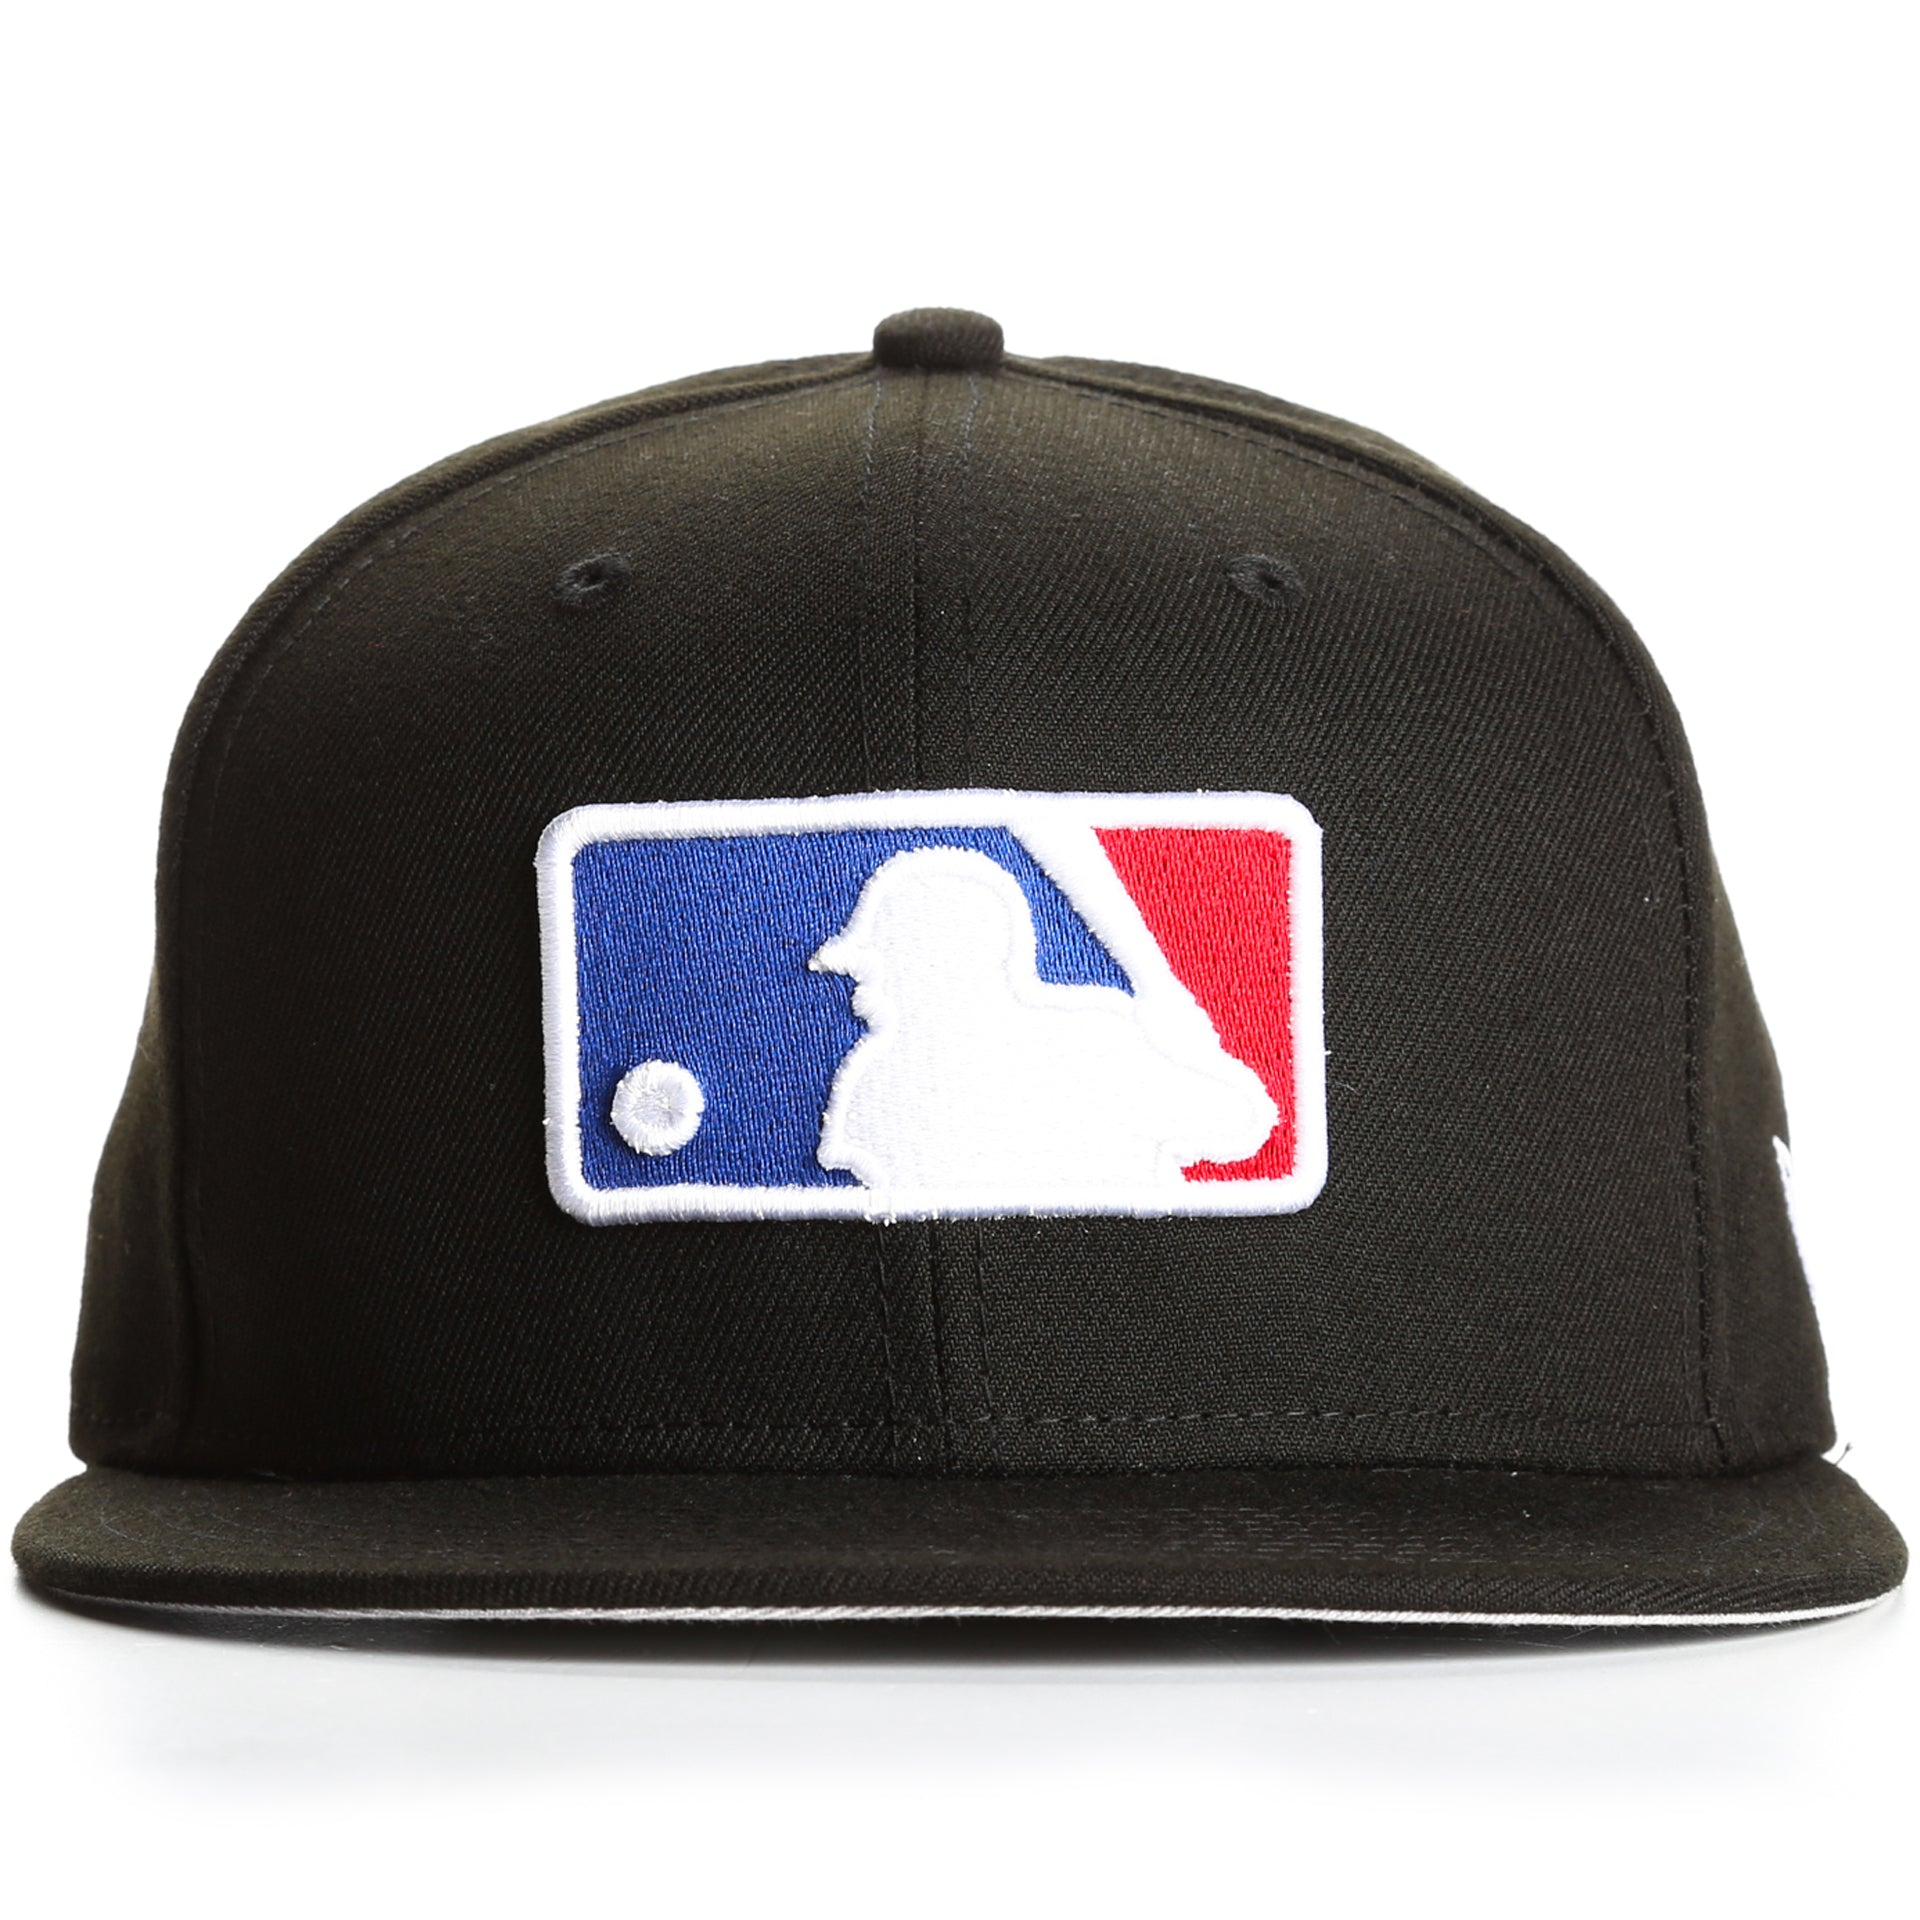 New Era 9Fifty MLB Logo Basic Snapback - Black - New Star d5257f4179b